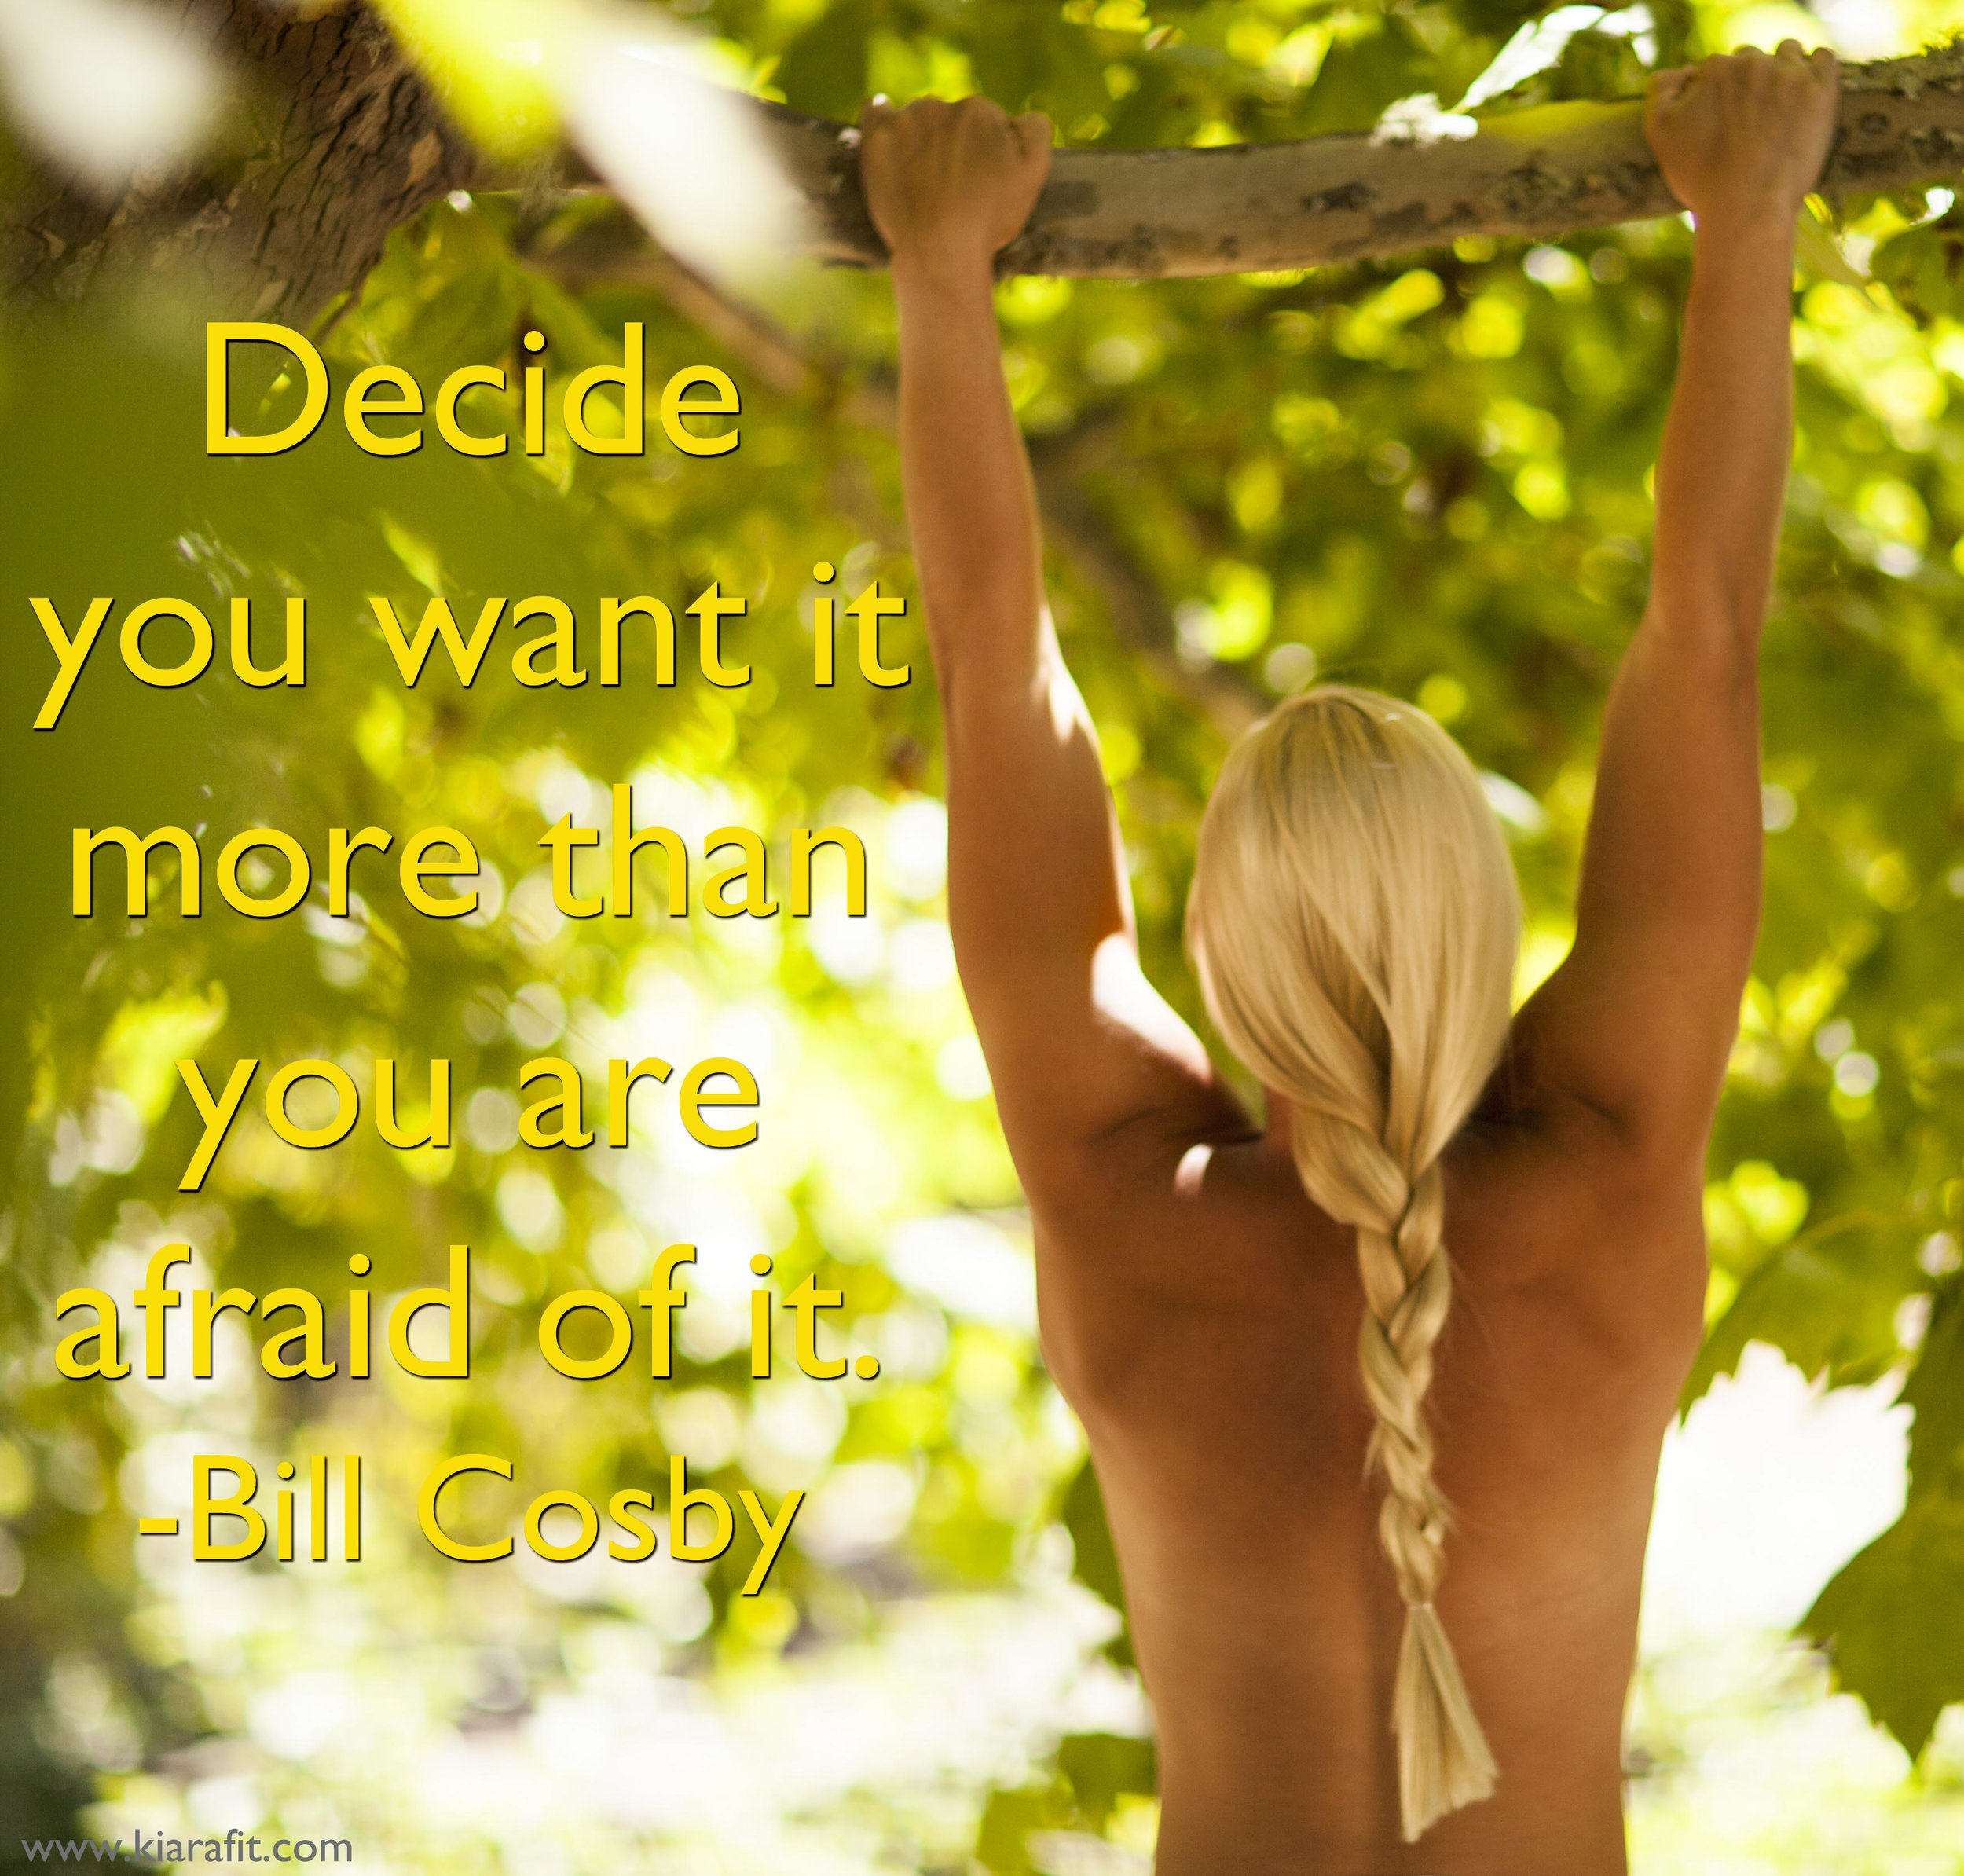 Decide You Want It More Than Fear It